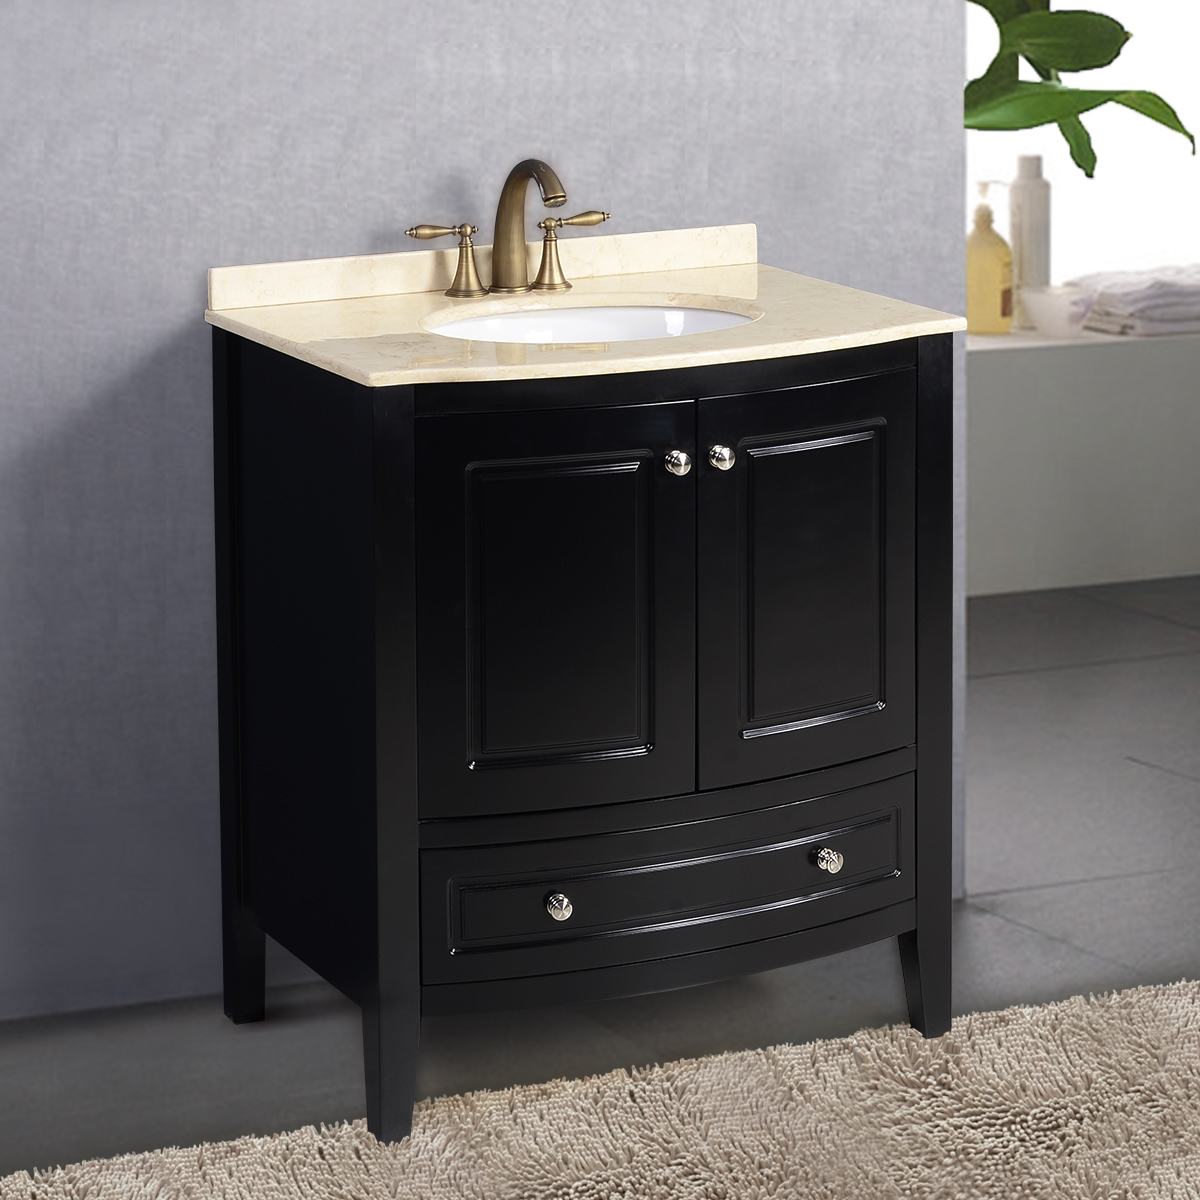 Bathroom Cabinets Vanity Unit